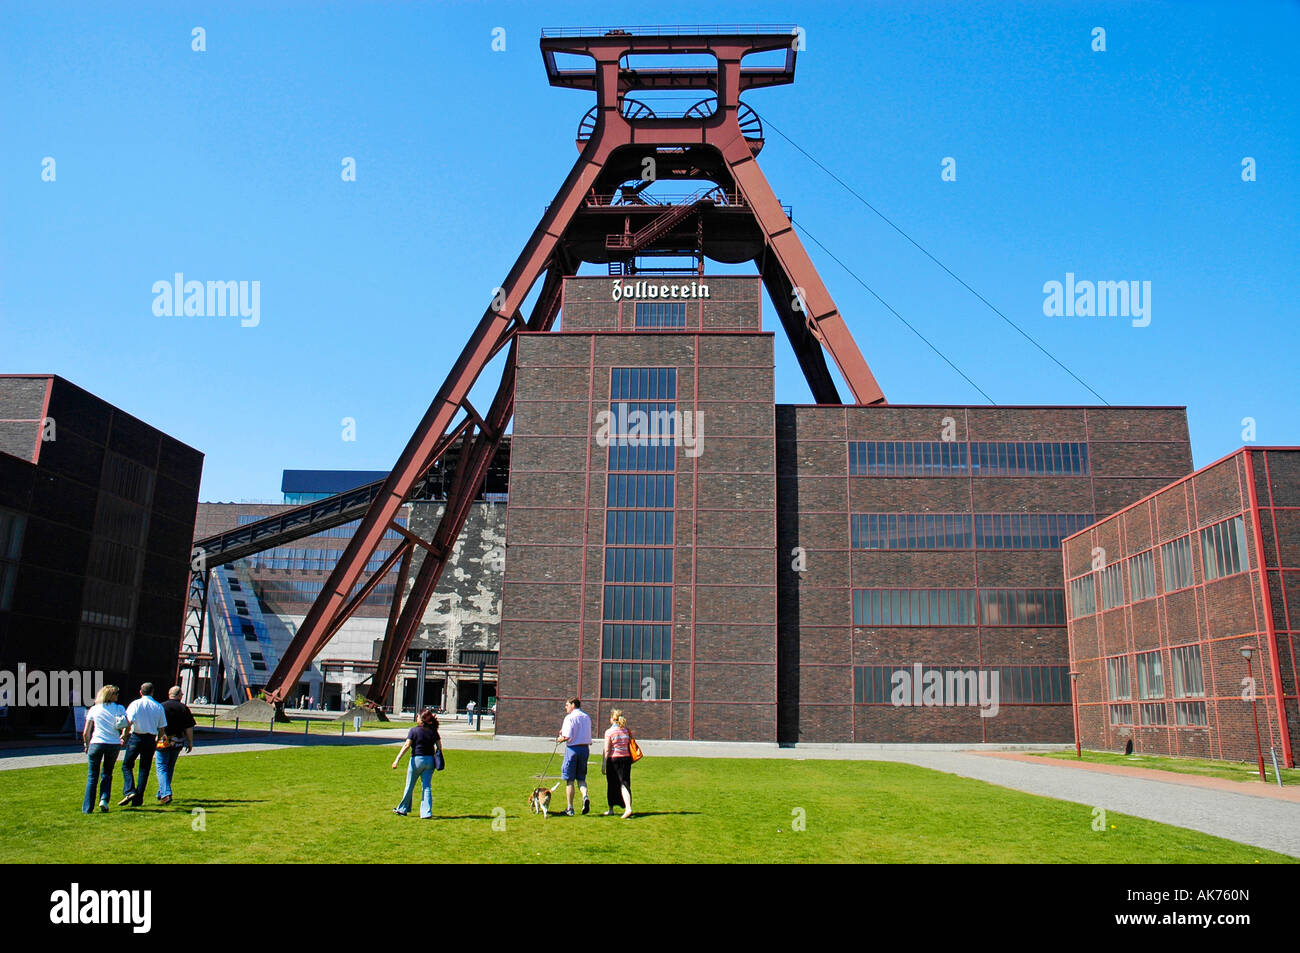 Coal mine Zollverein / Essen - Stock Image